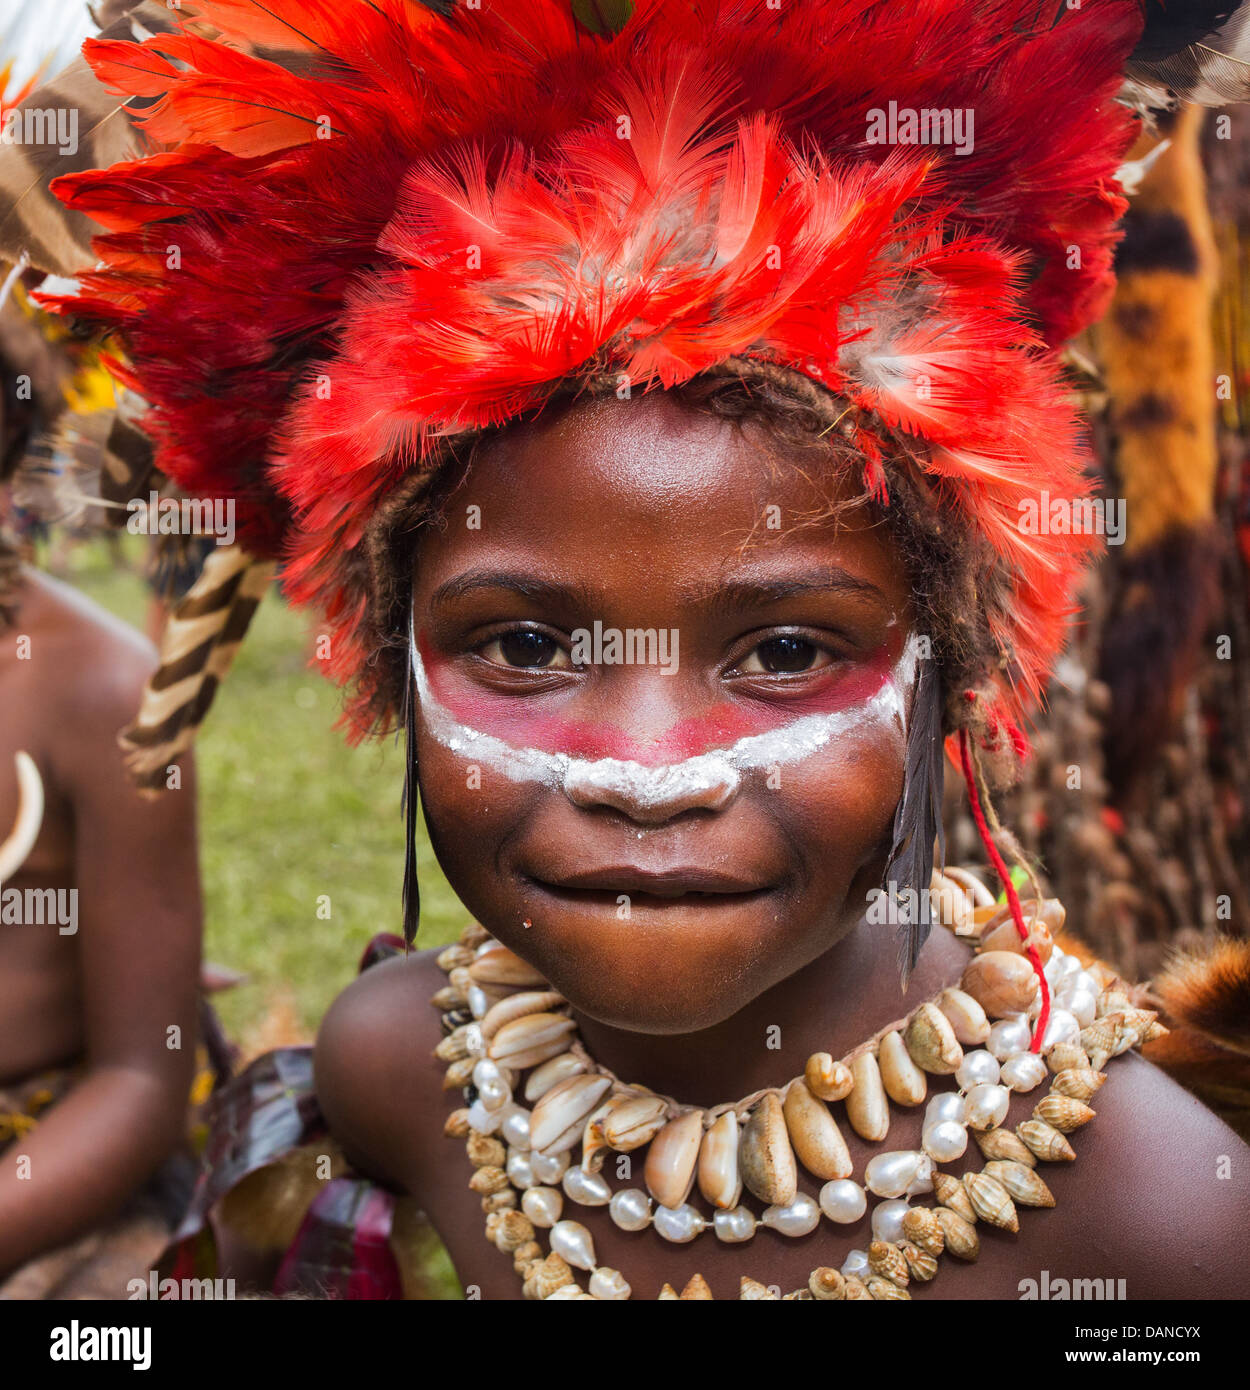 Young girl wearing a bright red feather headdress and necklace made of shells, Goroka show, Papua New Guinea - Stock Image